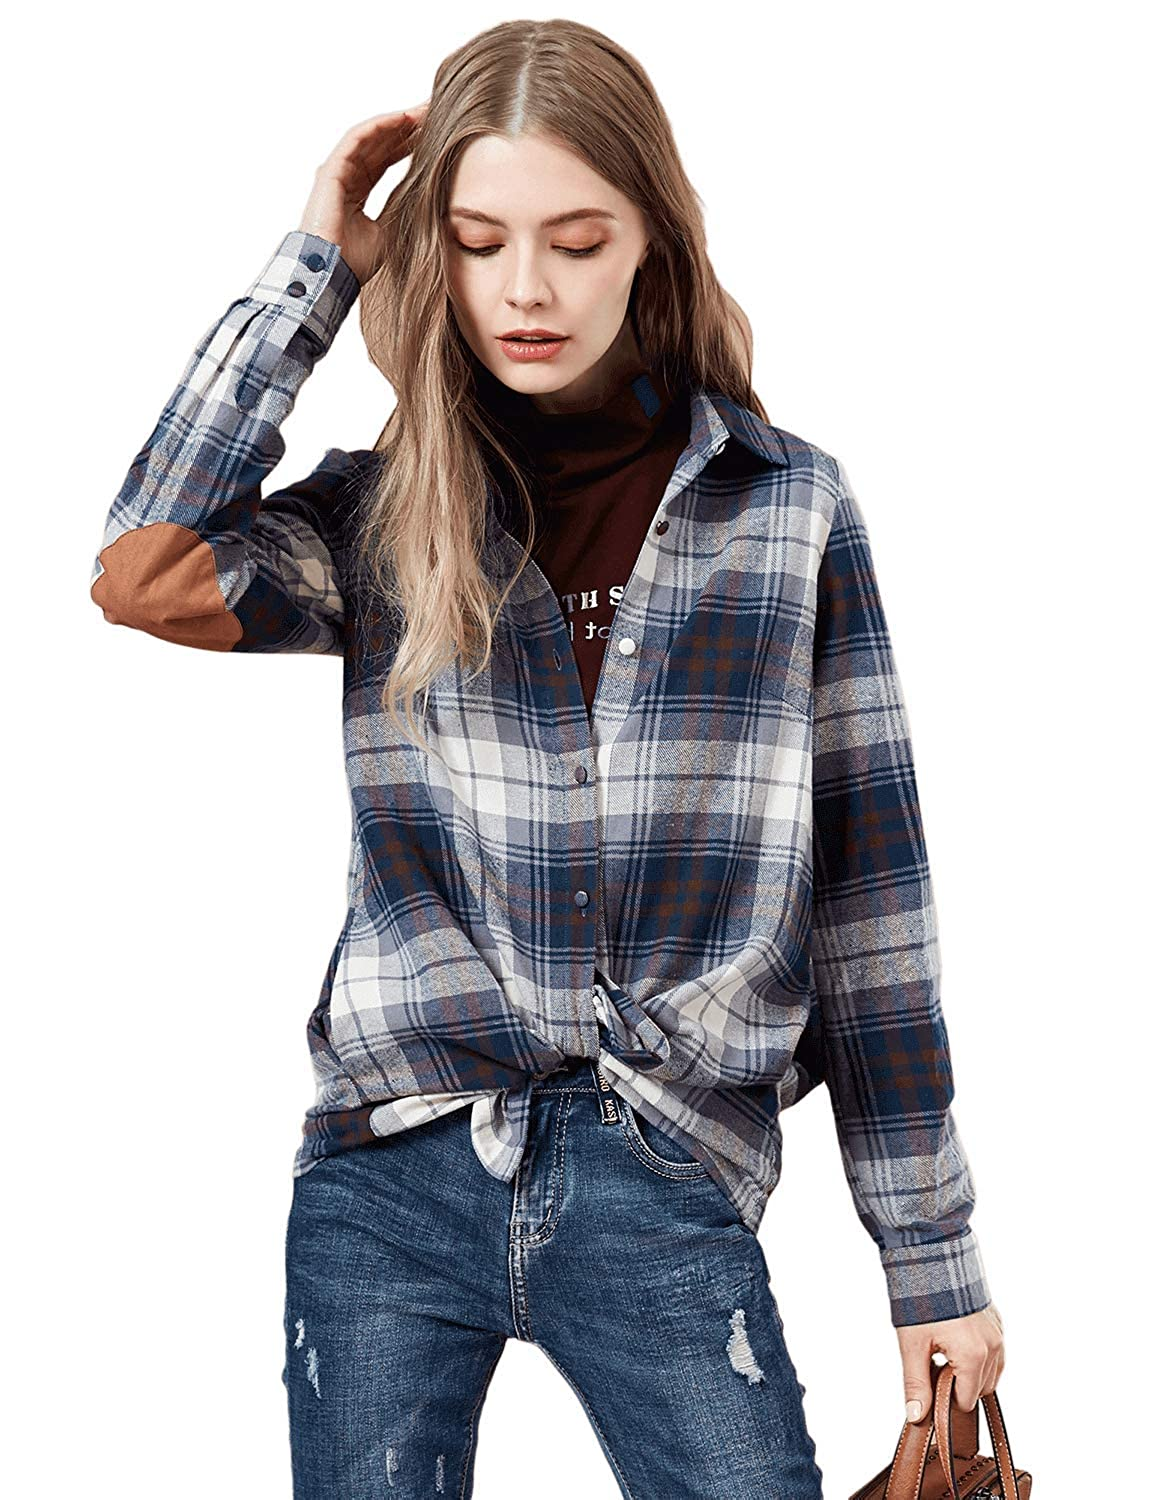 Artka Women's Patchwork Plaid Shirt Long Sleeve Regular Fit All Match Tops Multicolored